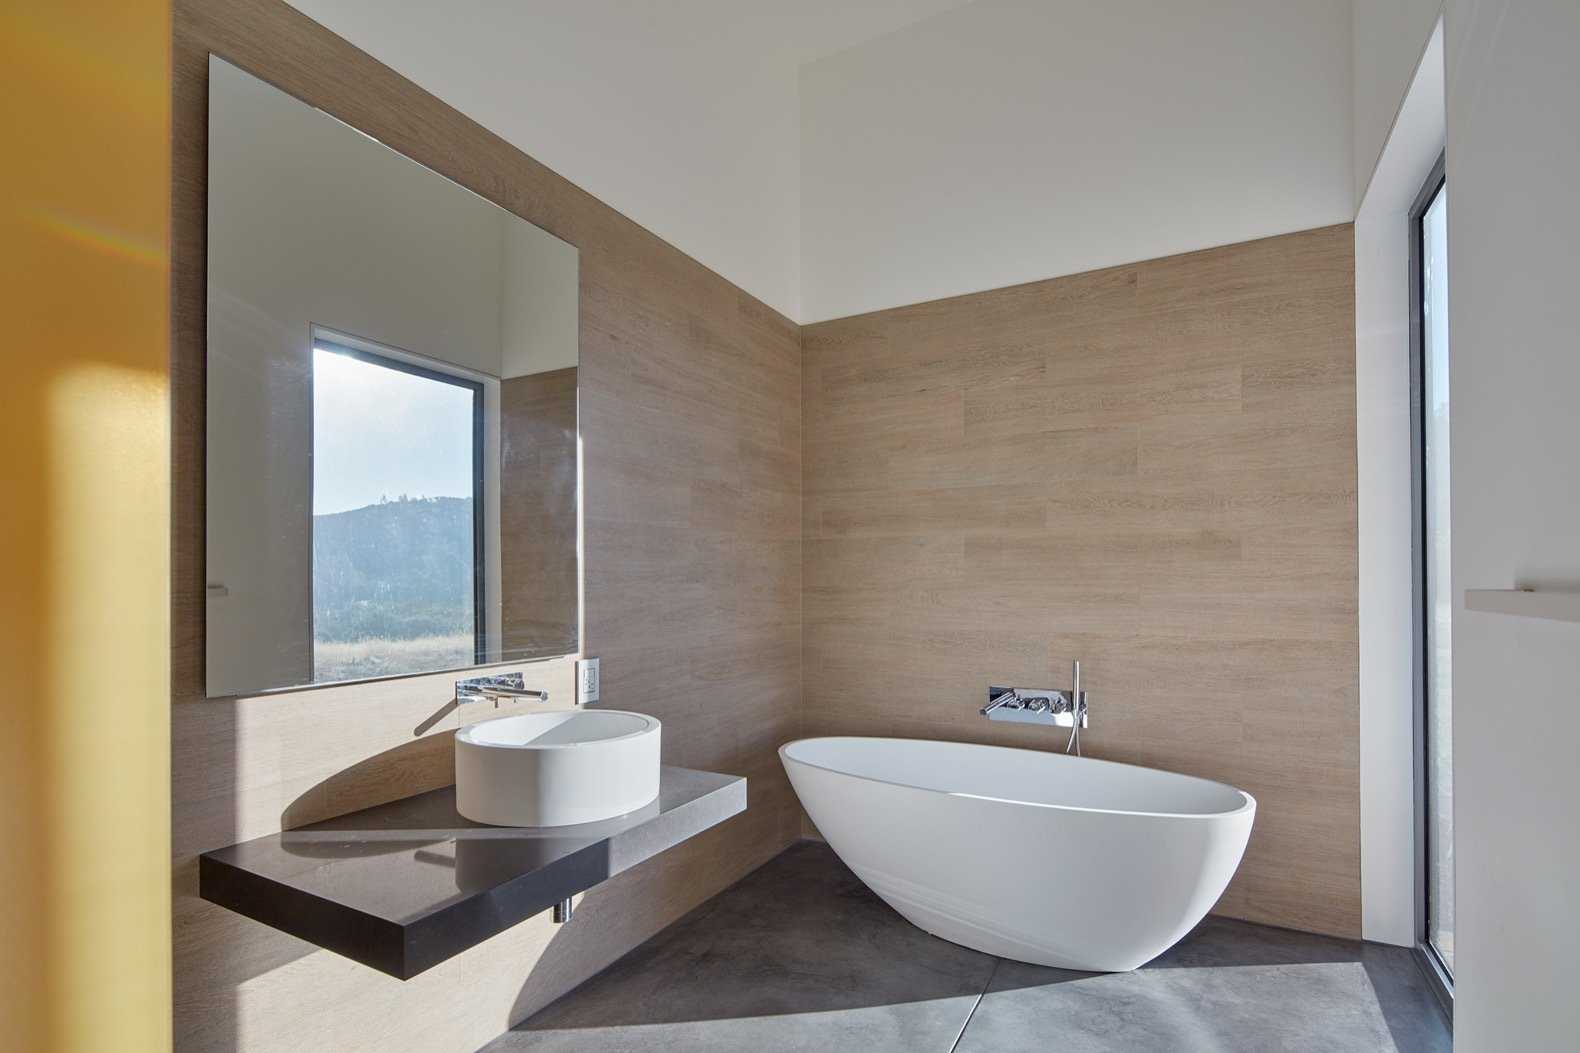 Bath Room, Vessel Sink, Concrete Floor, Freestanding Tub, and Concrete Counter The guest bedroom features a soaking tub with a full-height window overlooking the deck and landscape beyond.   Photos from An Off-Grid Goto House Wraps Around a Jewel-Like Courtyard